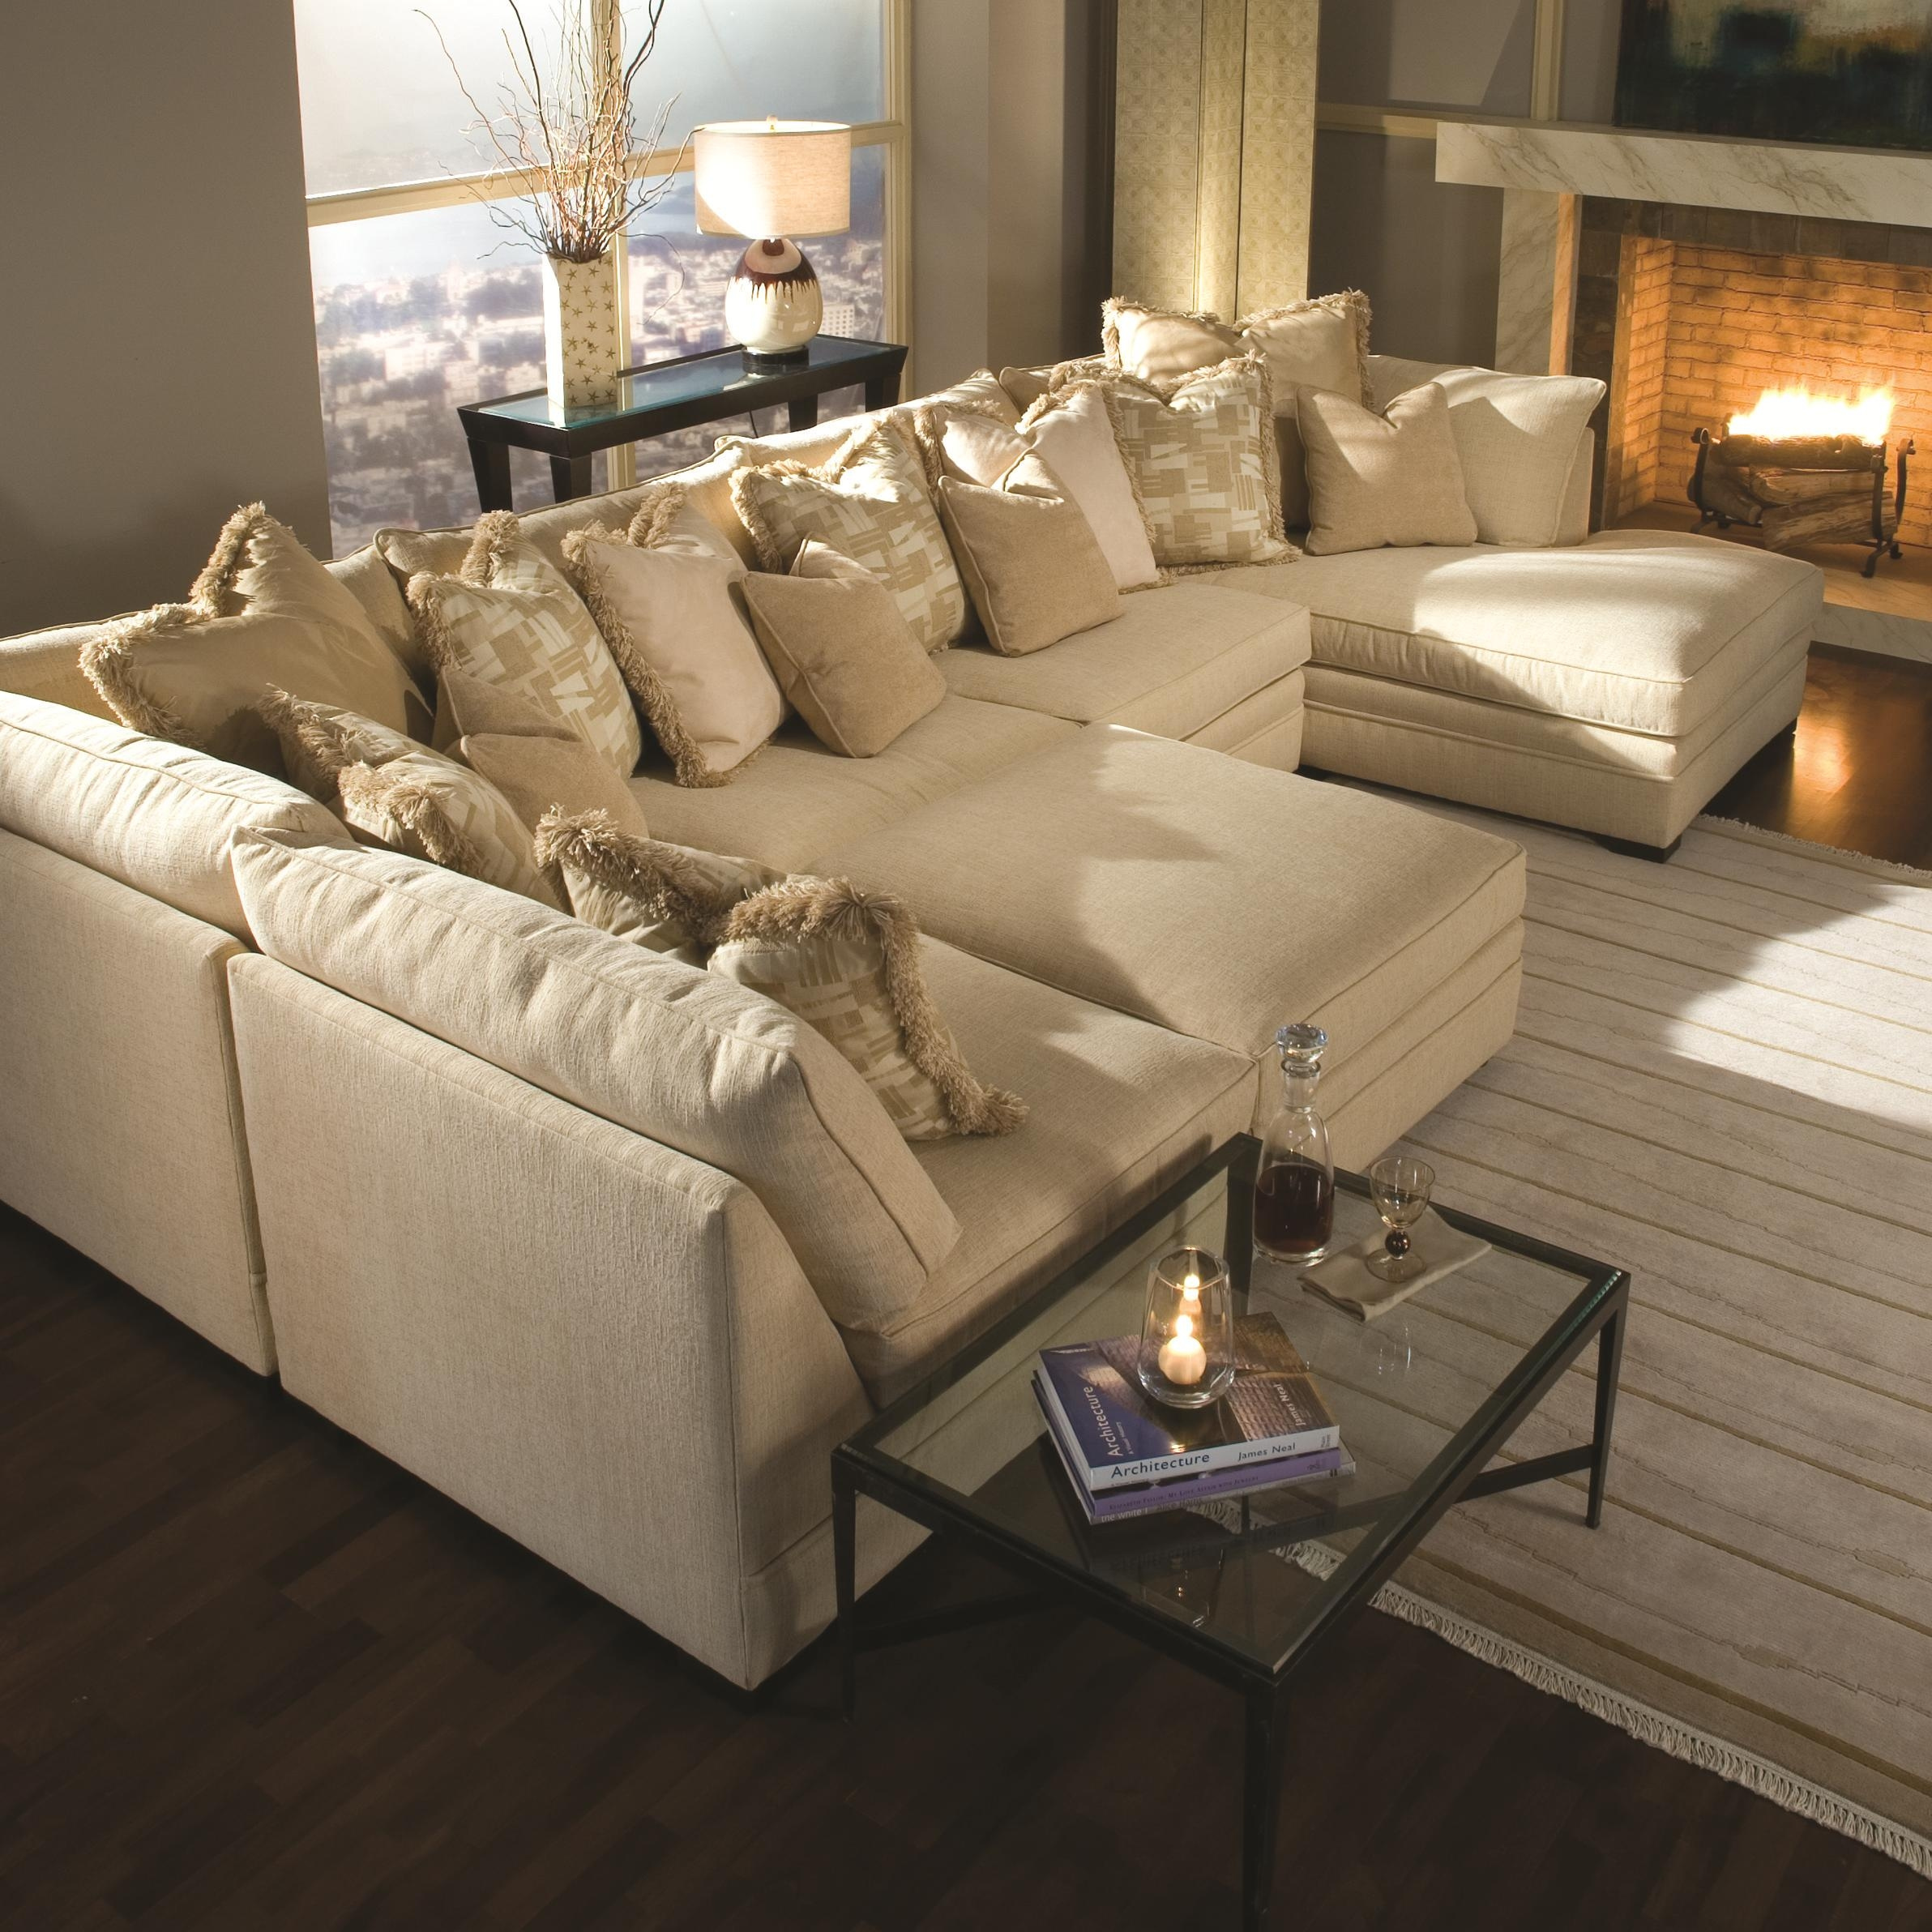 Epic Cheap U Shaped Sectional Sofas 35 About Remodel Backless Within Backless Sectional Sofa (Image 12 of 15)